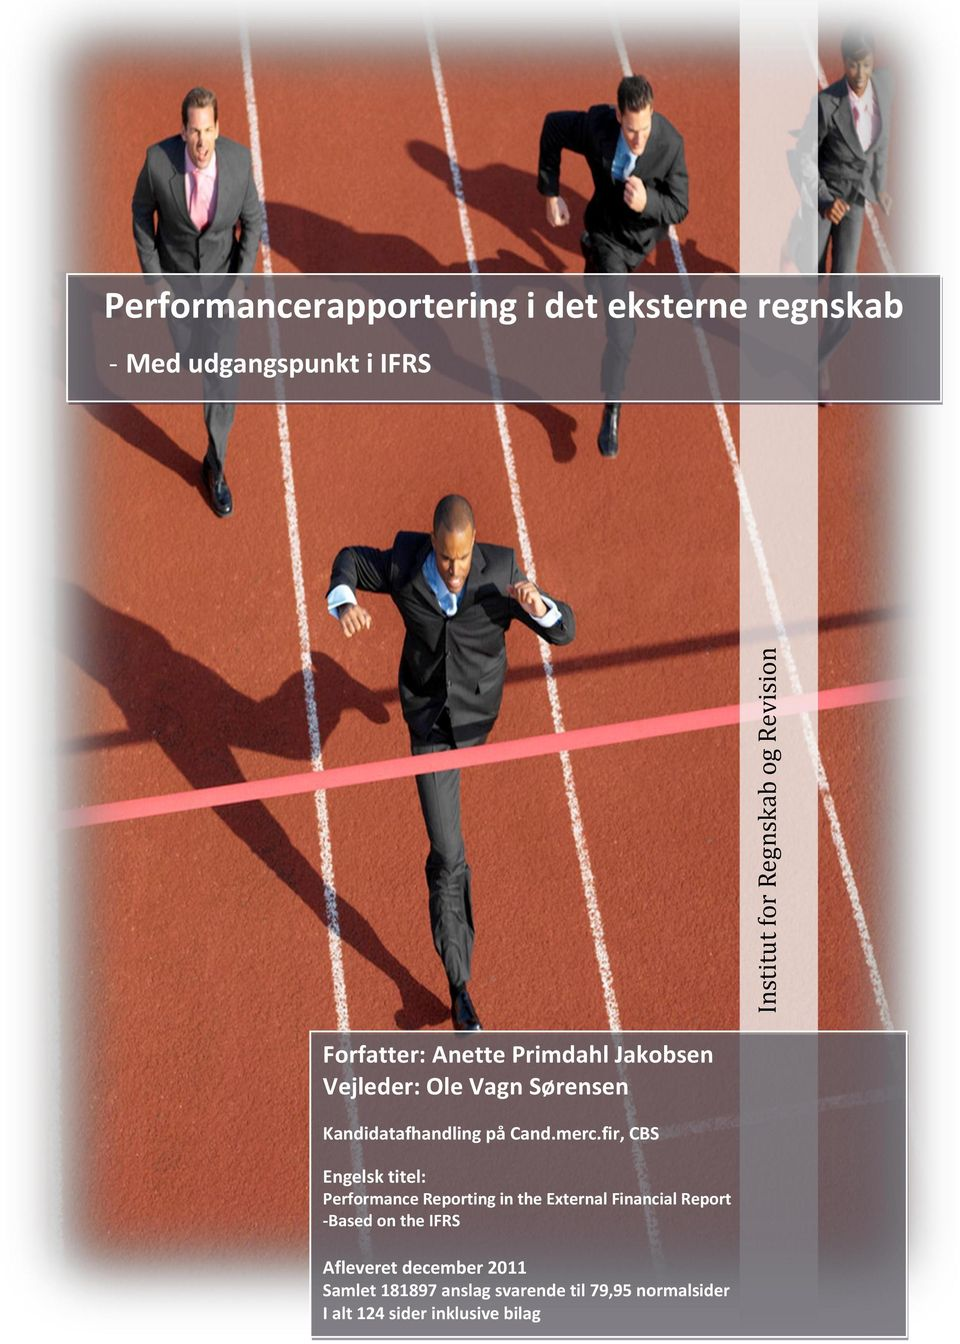 fir, CBS Engelsk titel: Performance Reporting in the External Financial Report -Based on the IFRS